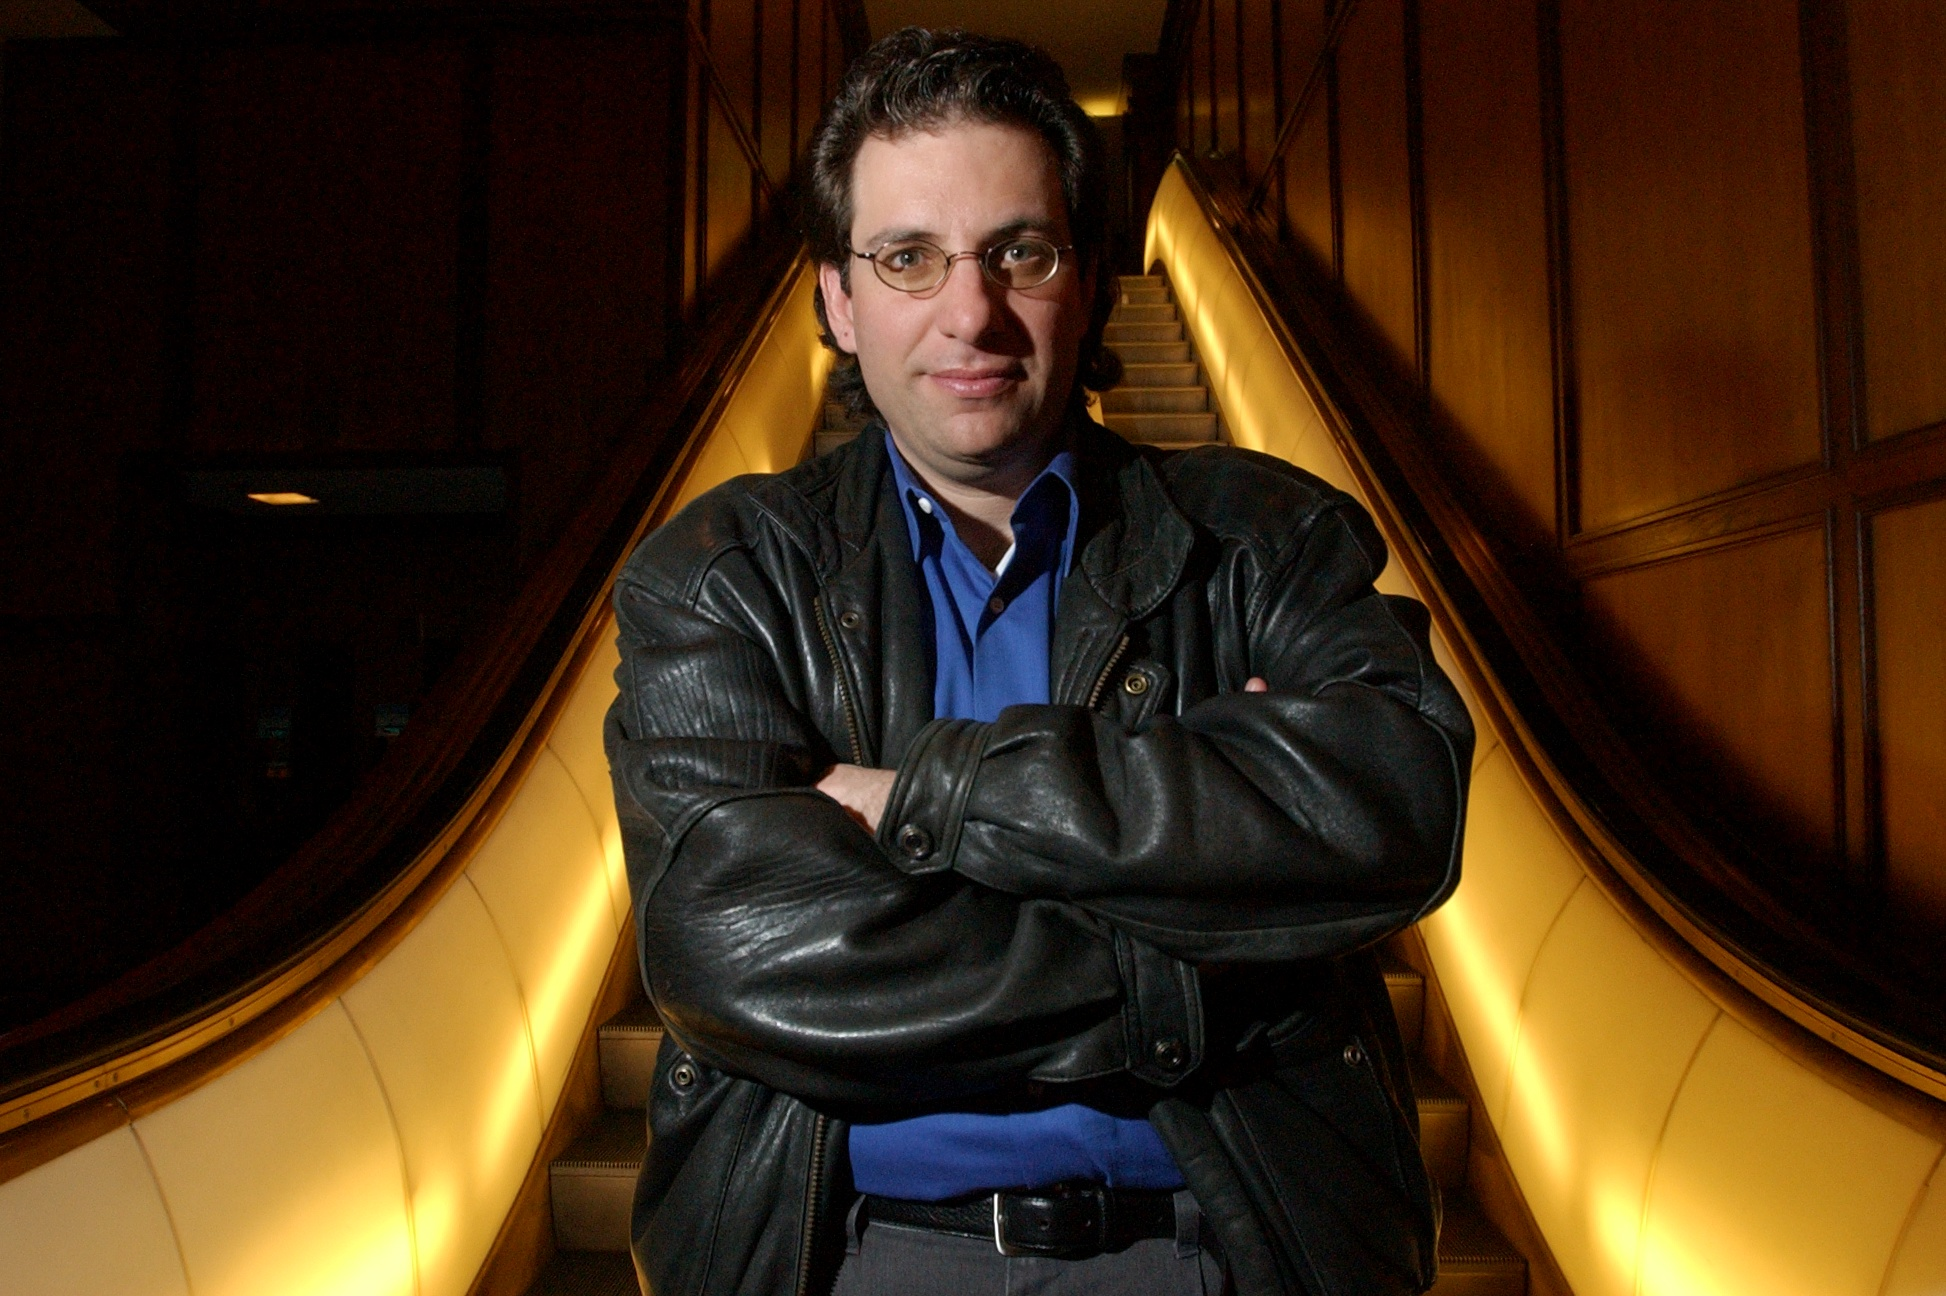 Kevin Mitnick, the worlds most notorious hacker poses for a portrait at the Brown Palace. Mitnick once worked in Denver under the alias ID Eric Weiss at the Law firm of Holme, Roberts and Owen. (Craig F. Walker / The Denver Post)